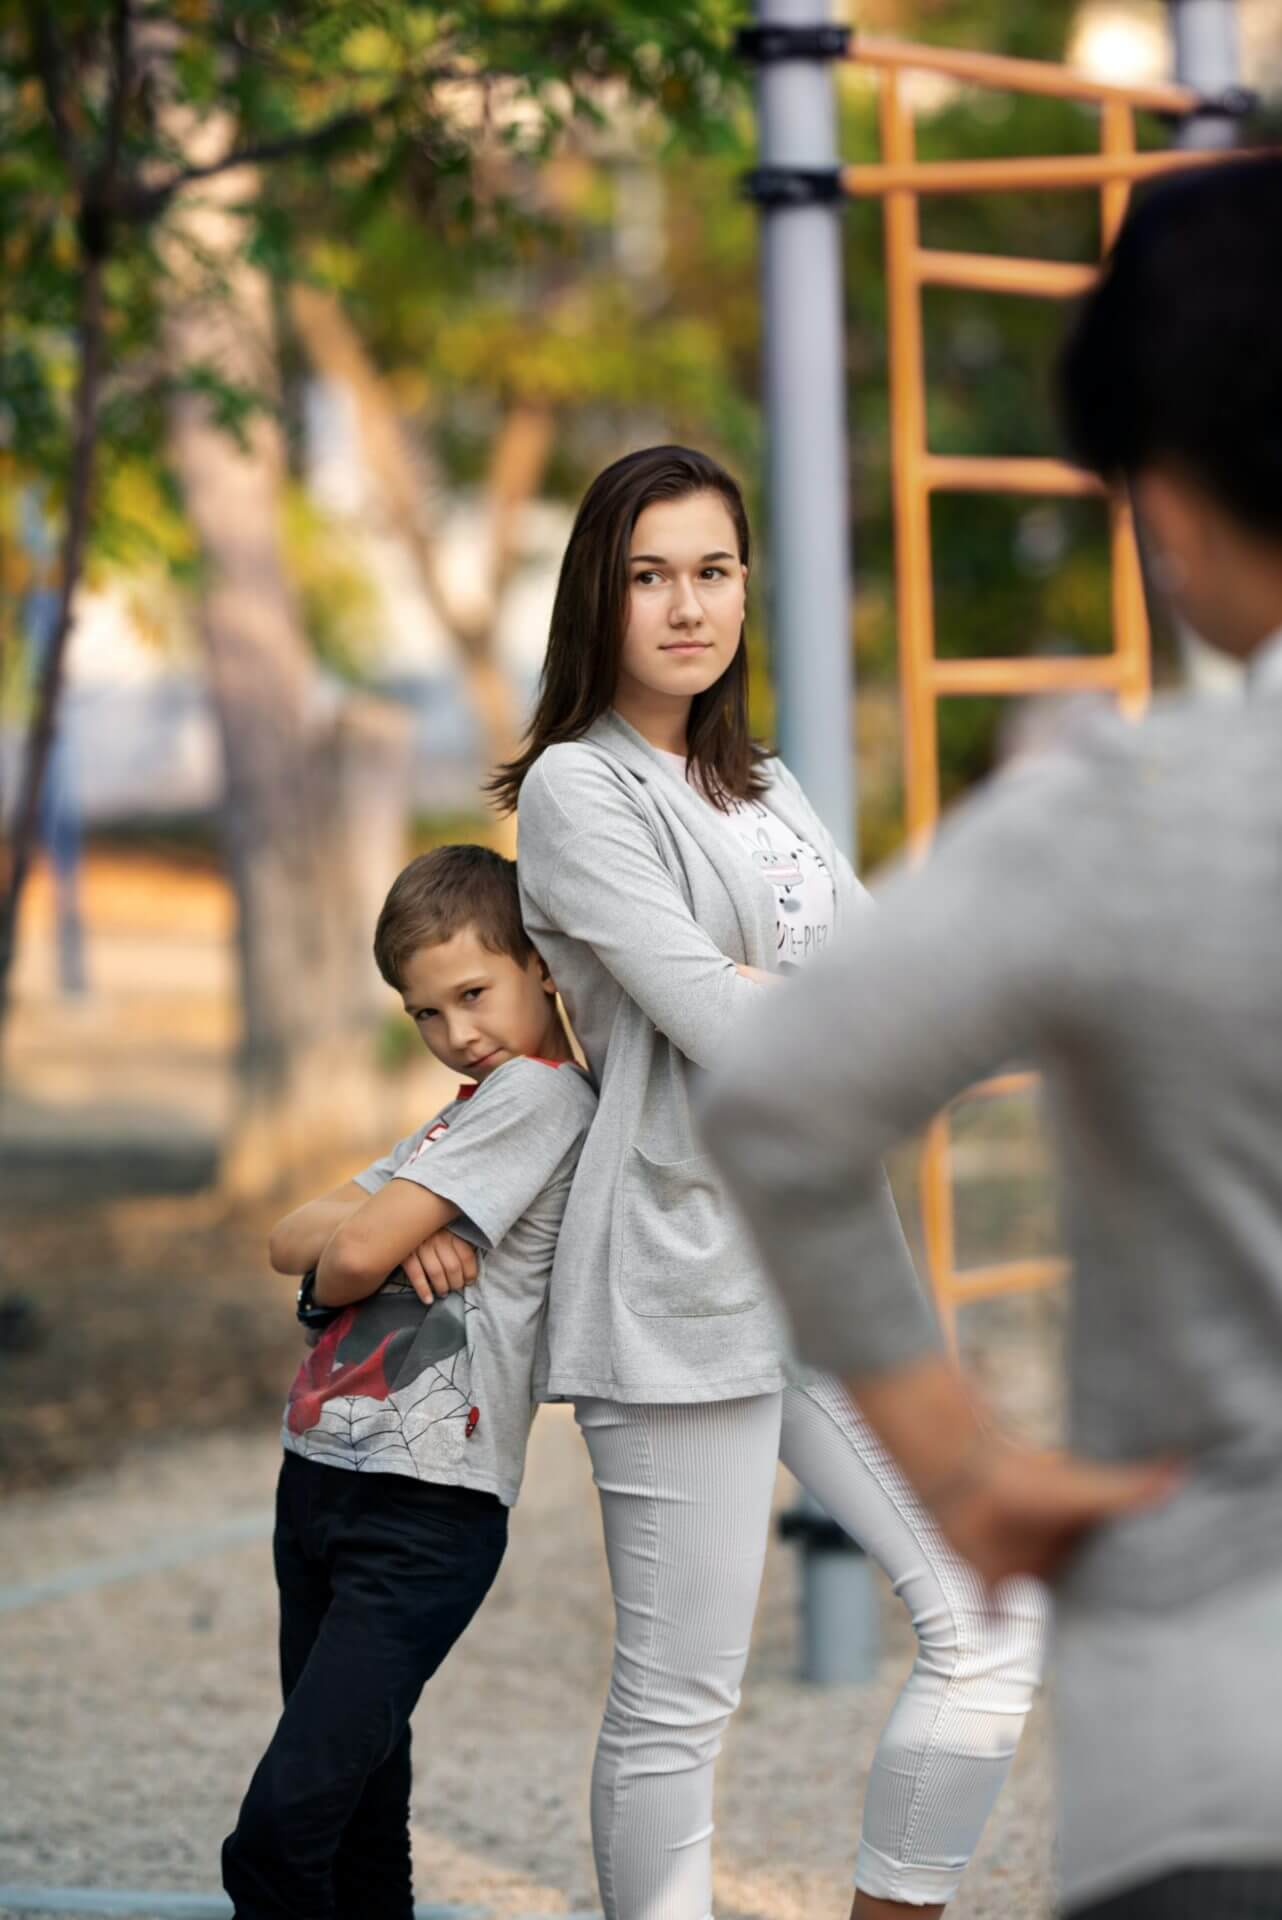 woman in white long sleeve shirt carrying child in white long sleeve shirt